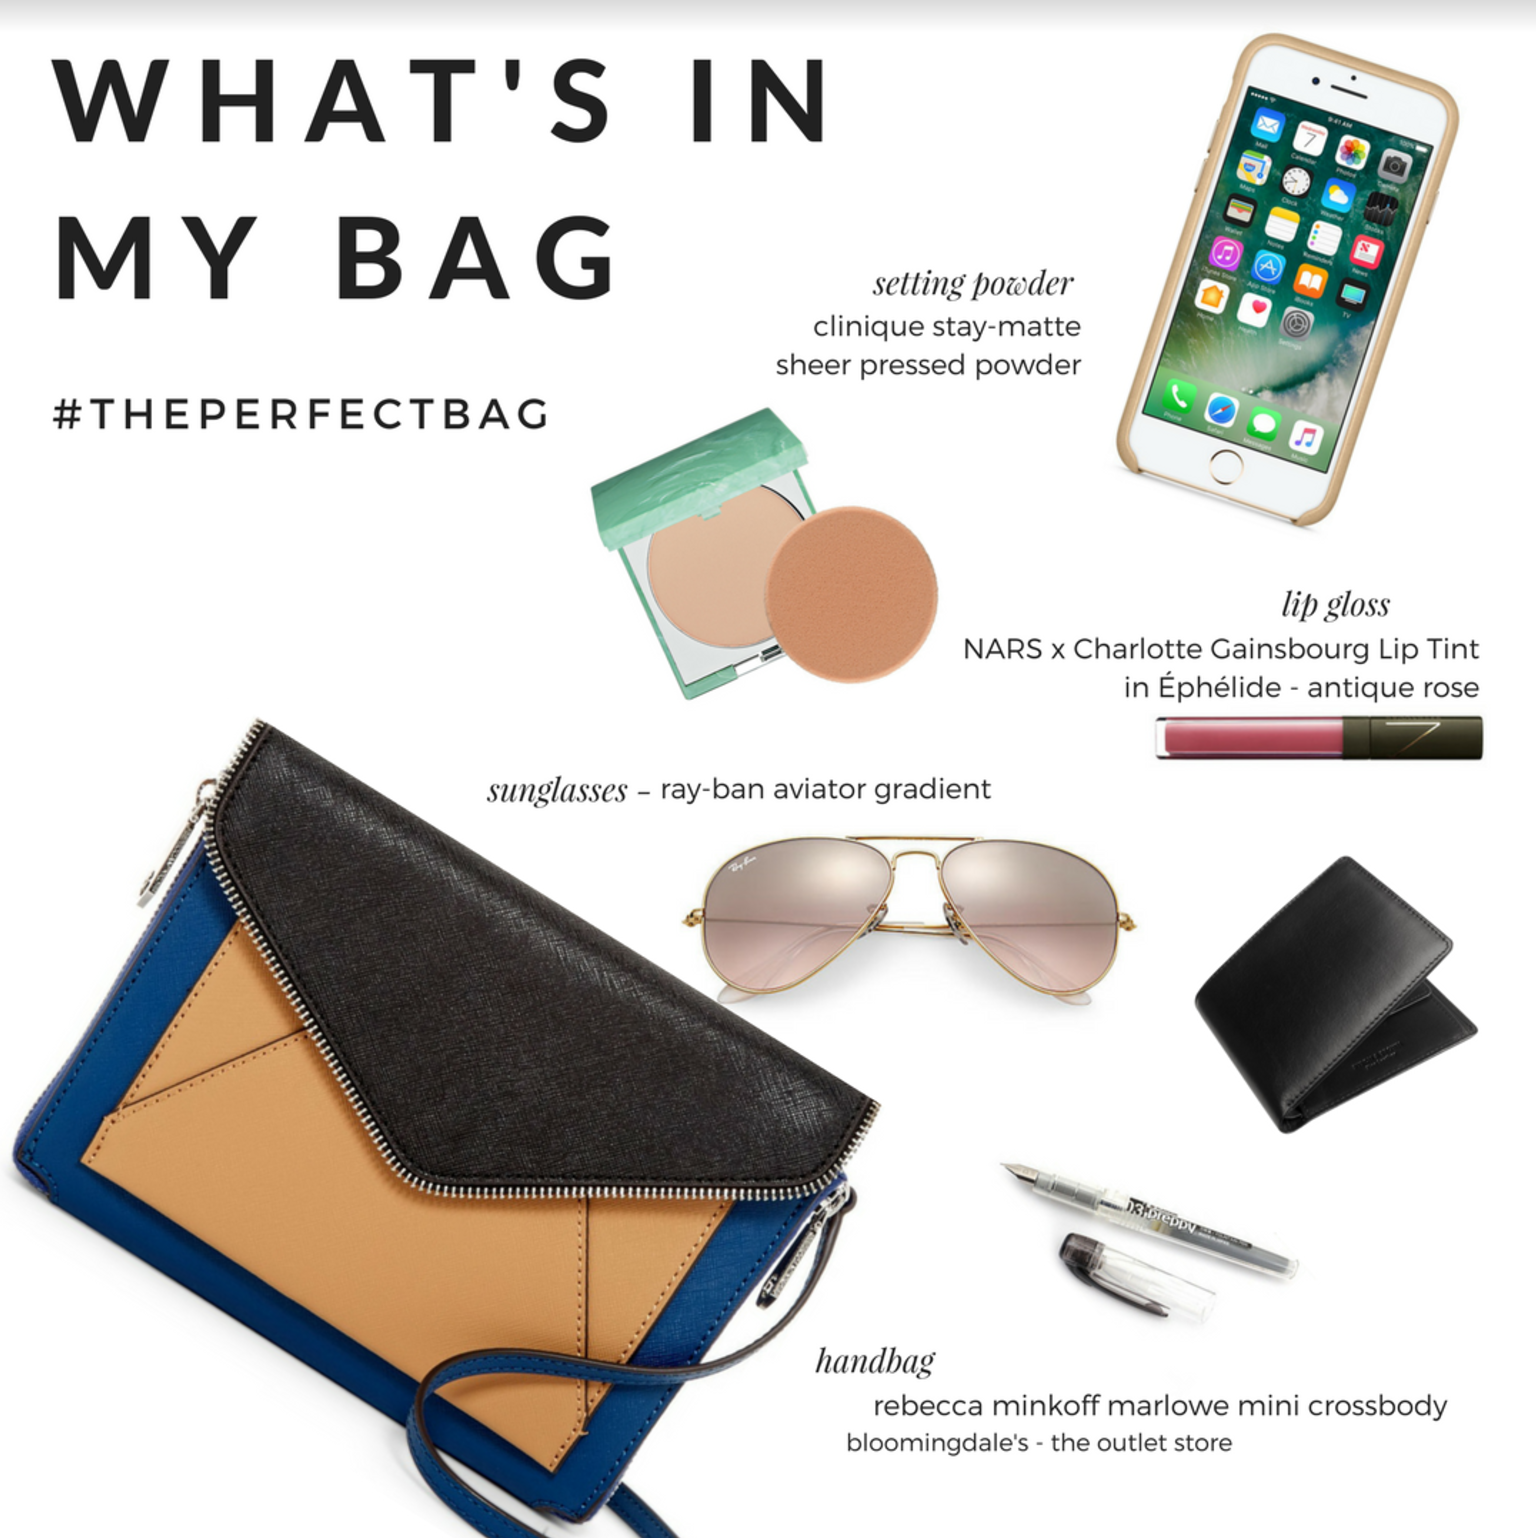 What's In My Bag? Here are my summer must haves whenever I'm out and about!